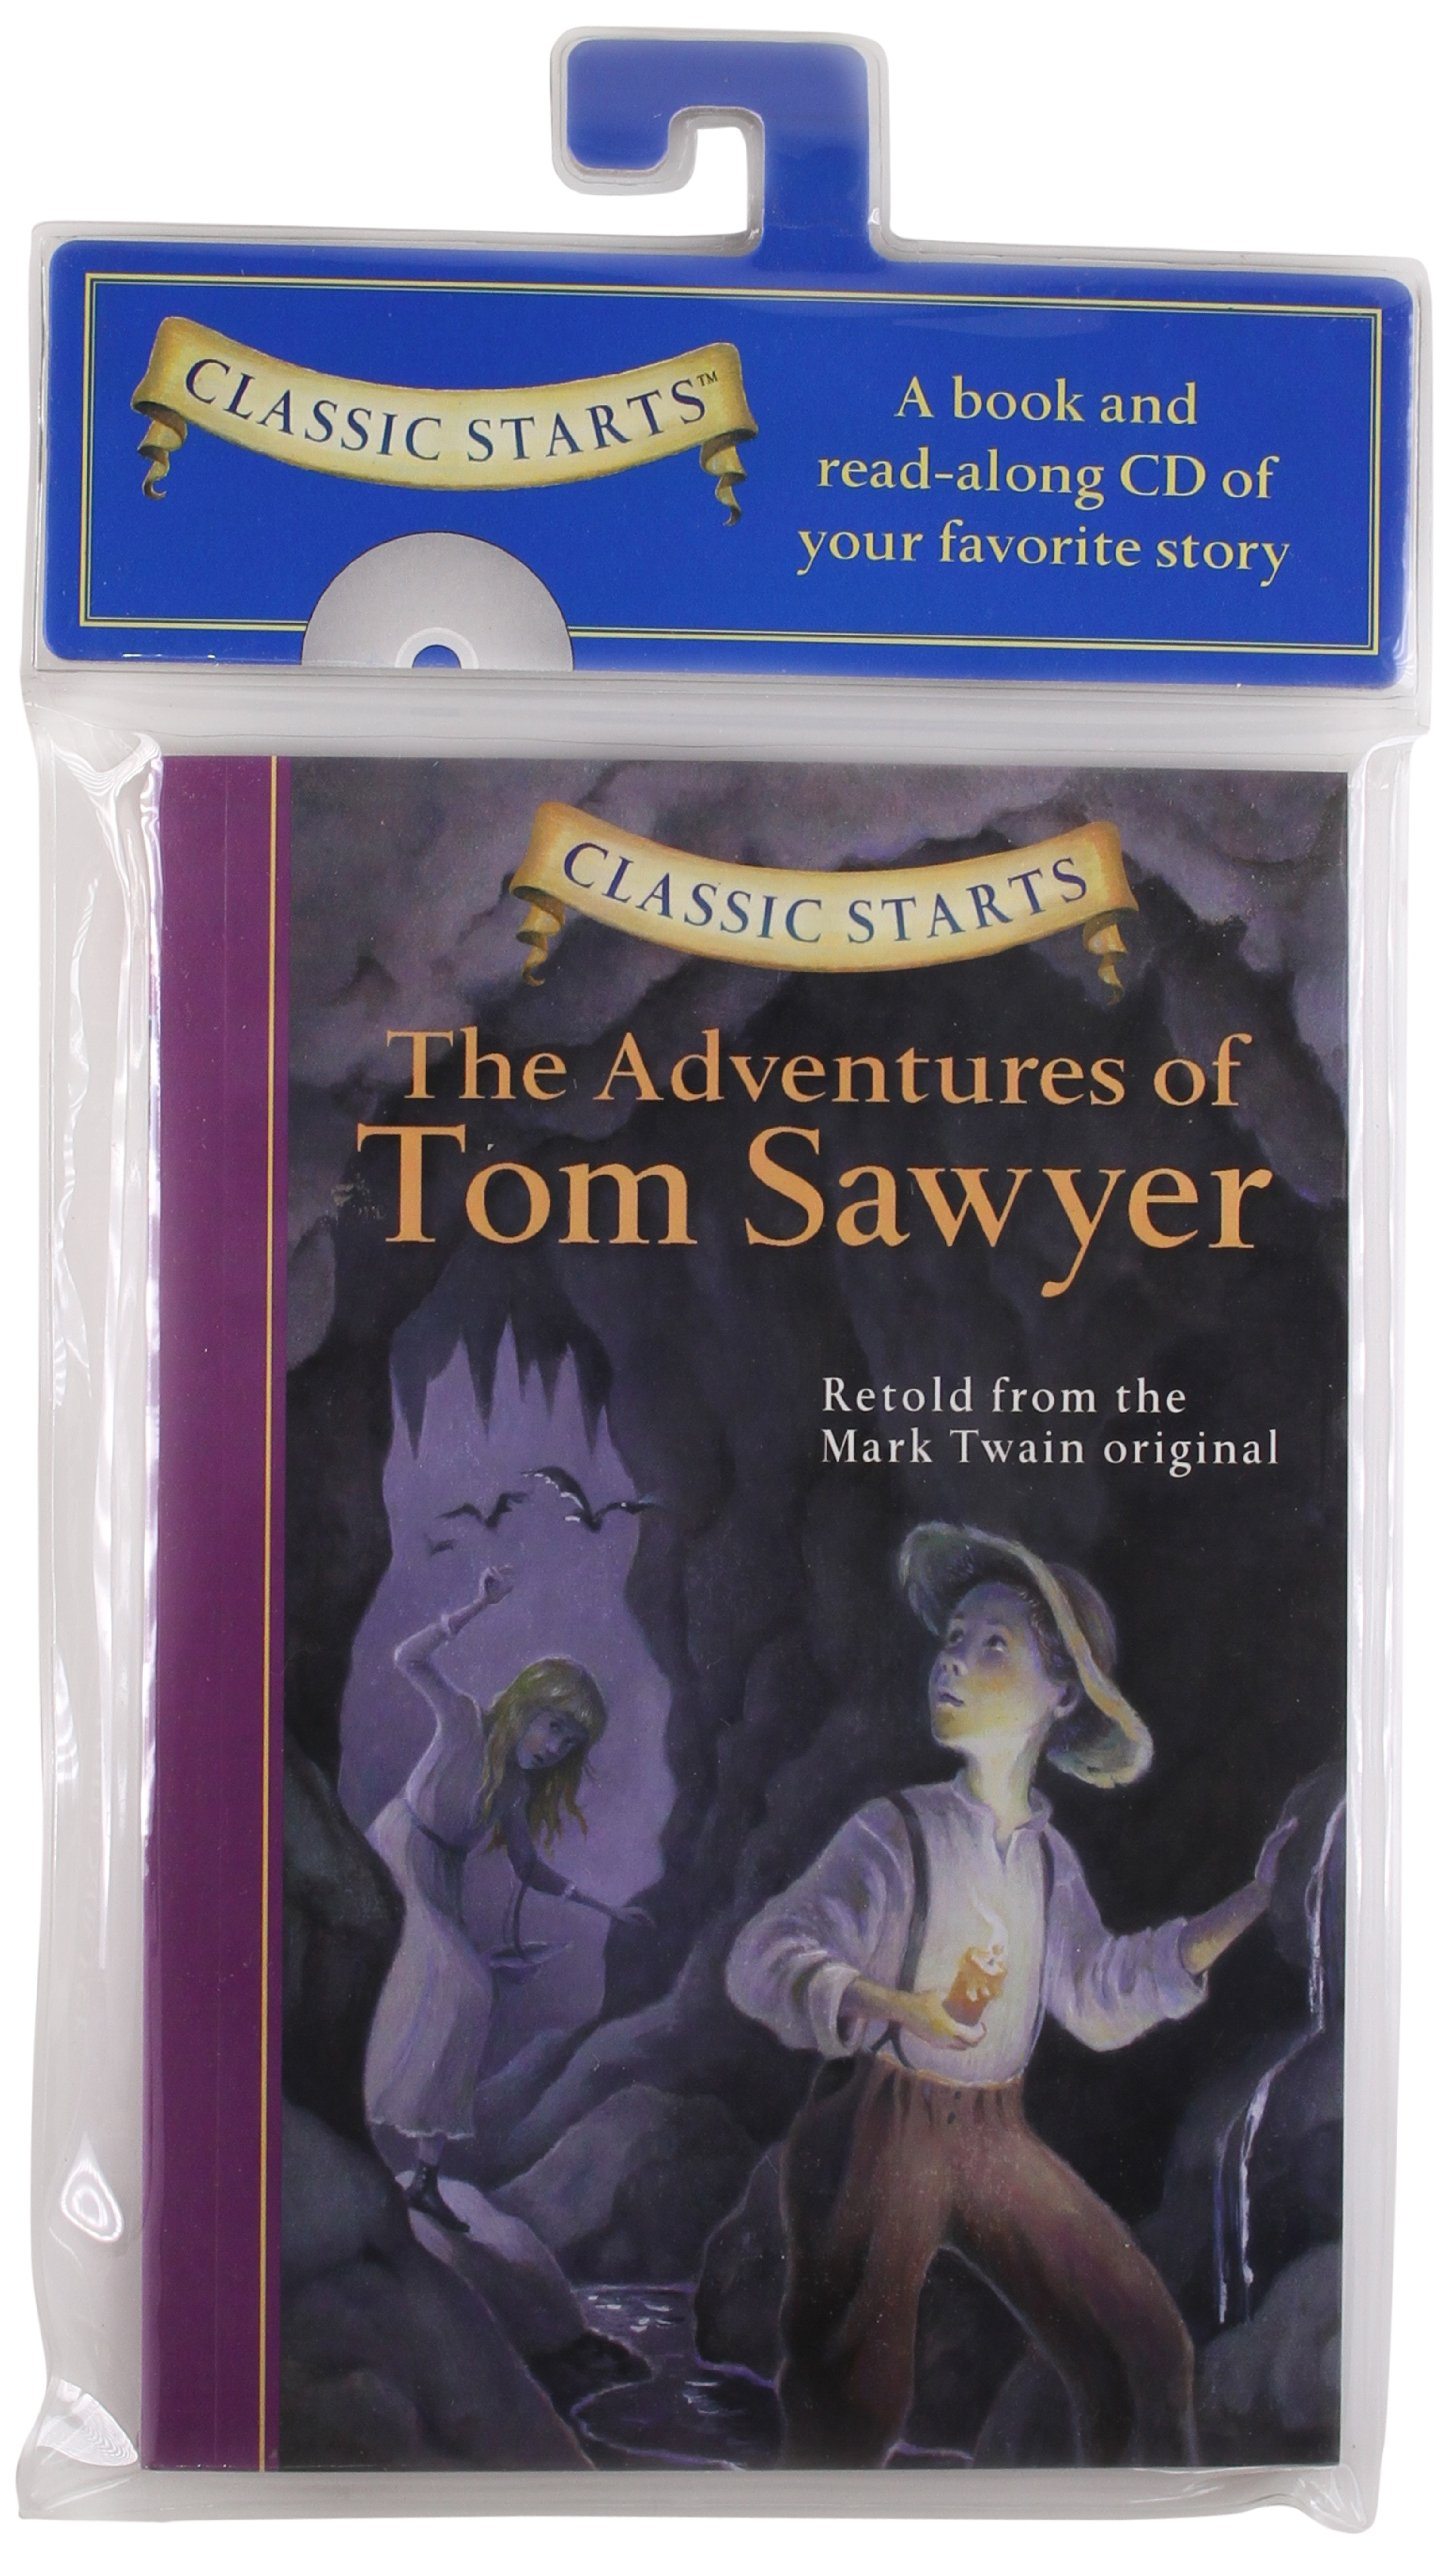 Classic Starts™ Audio: The Adventures of Tom Sawyer (Classic Starts™ Series)